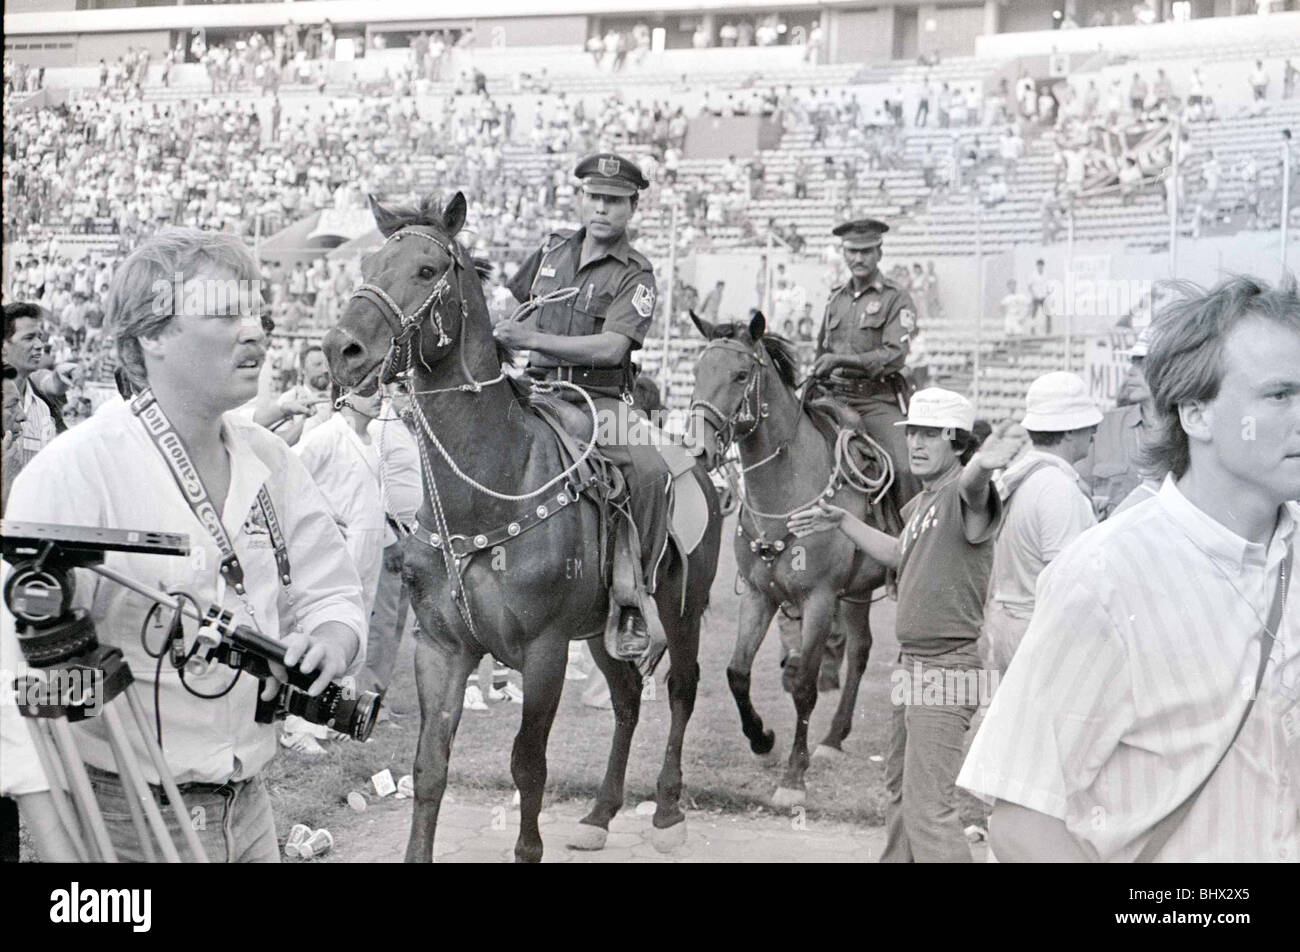 World Cup 1986 Group F England 3 Poland 0 Mounted Police directed towards troublesome England fans. Tecnol—gico - Stock Image